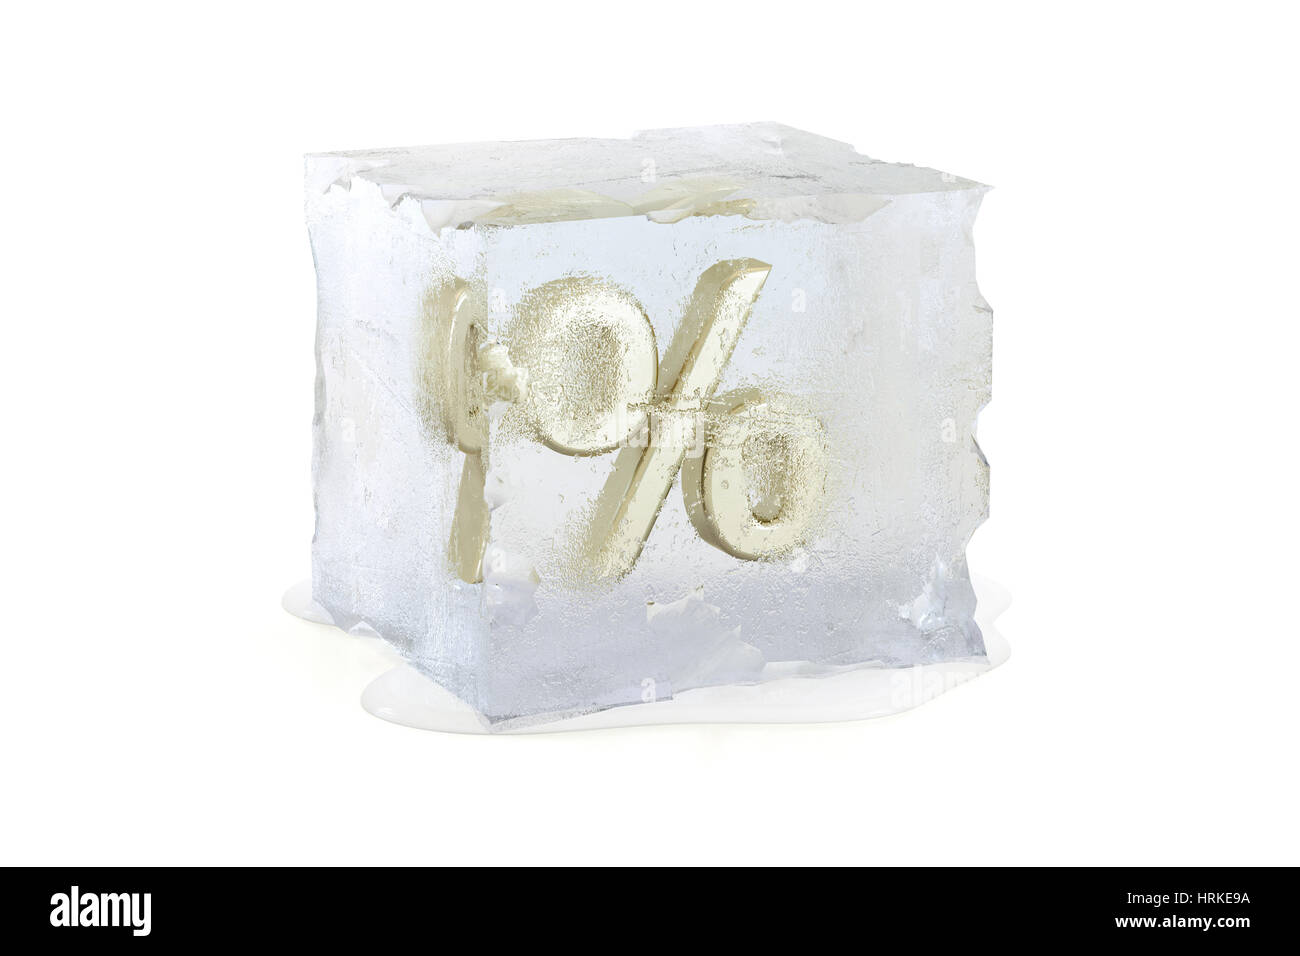 Percentage symbol frozen in a slowly melting ice cube  - interest rate freeze concept - Stock Image